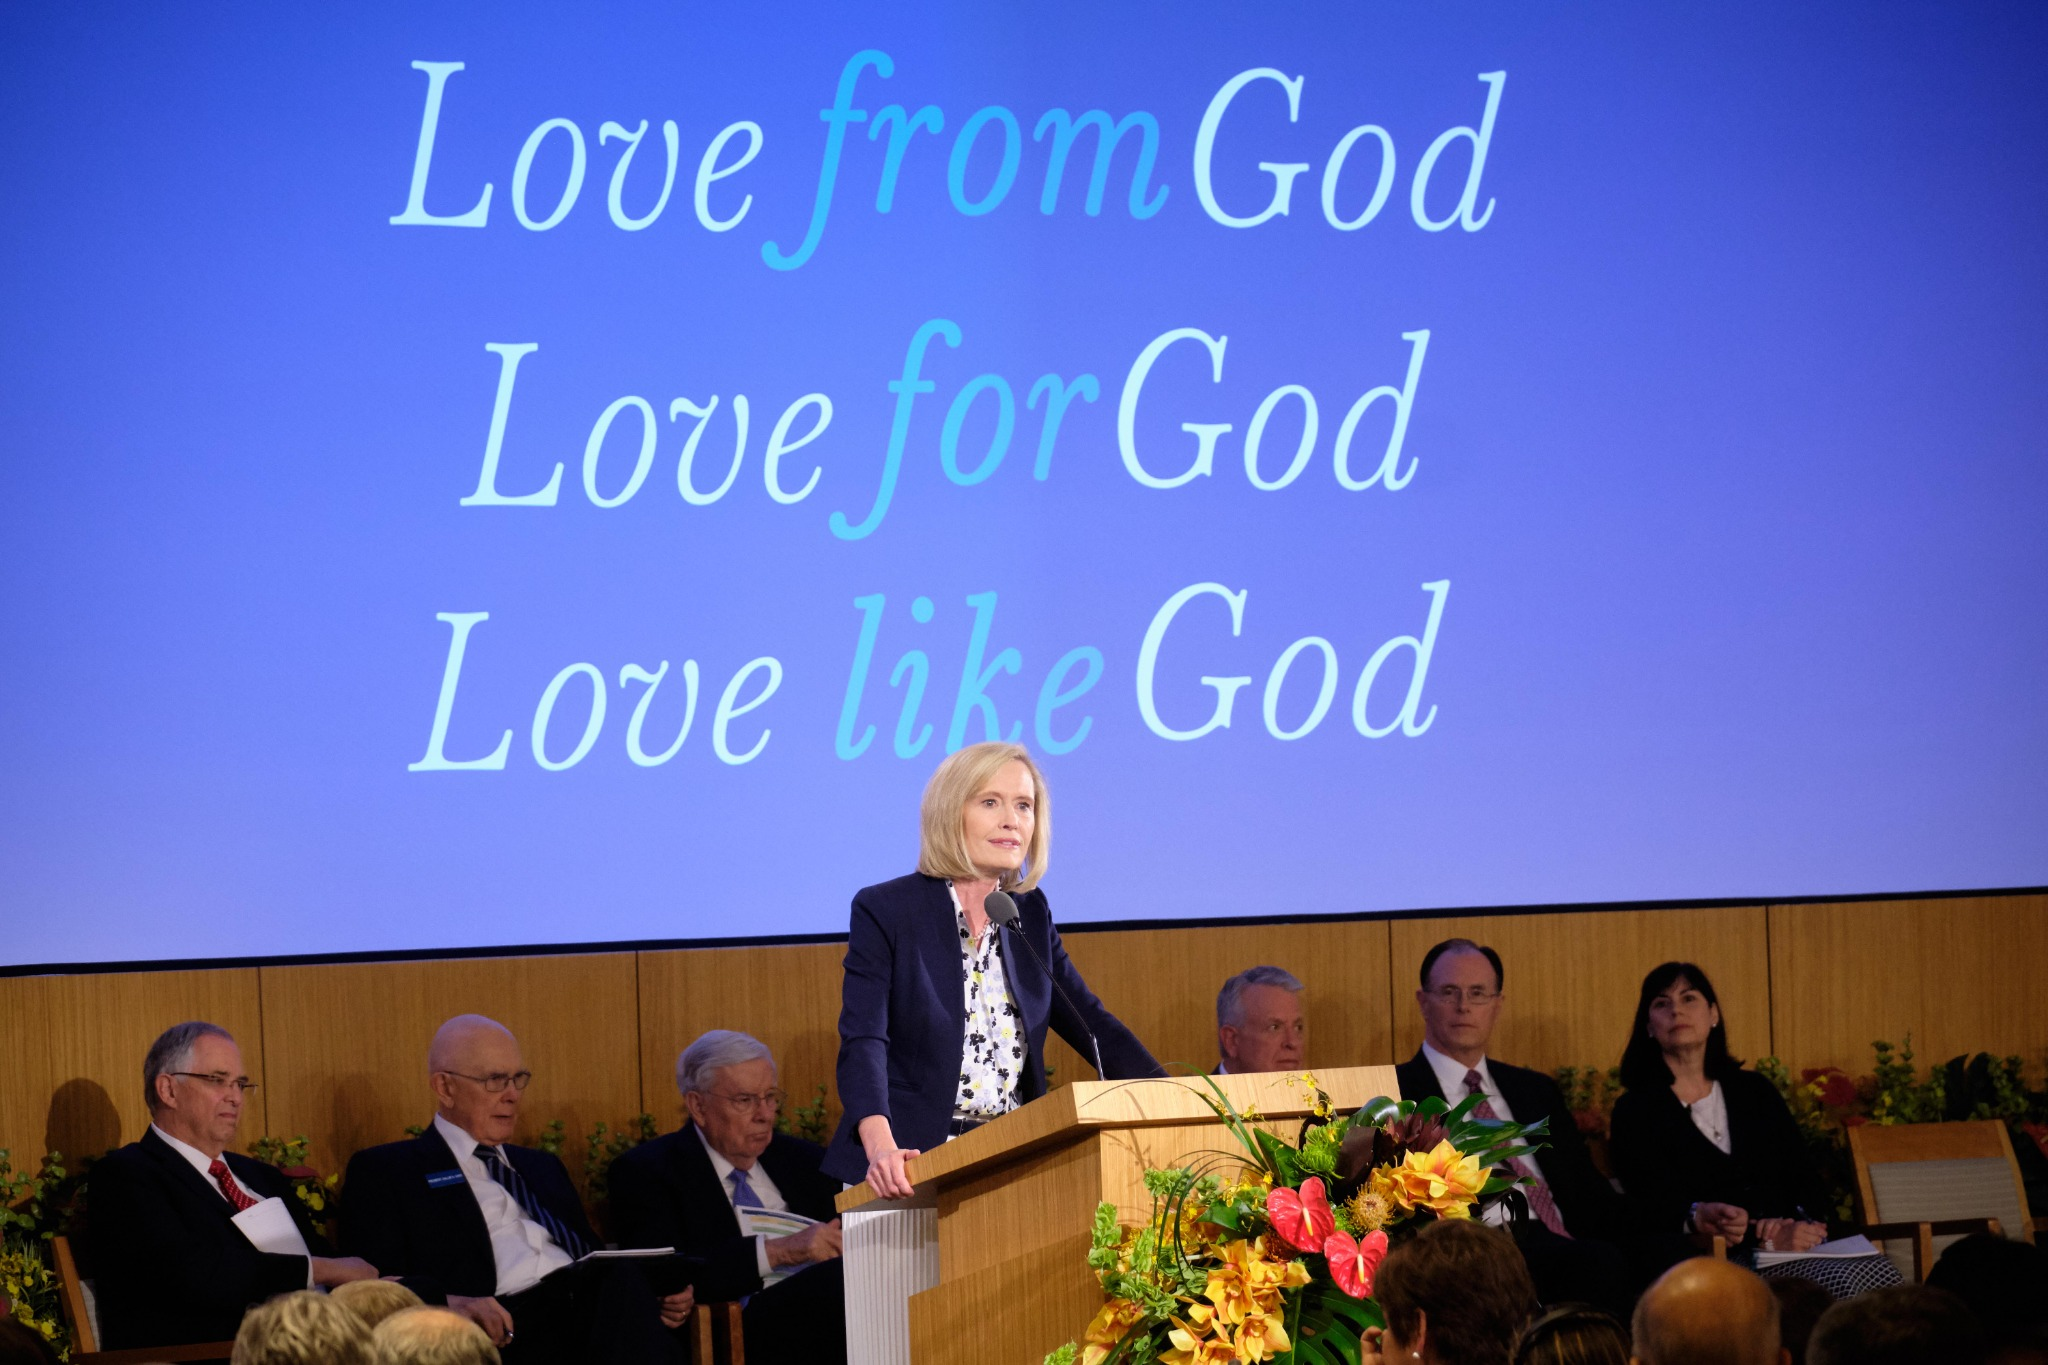 Sister Bonnie H. Cordon teaches about God's love during her presentation at the 2019 Mission Leadership Seminar on June 23, 2019, at the Provo MTC.